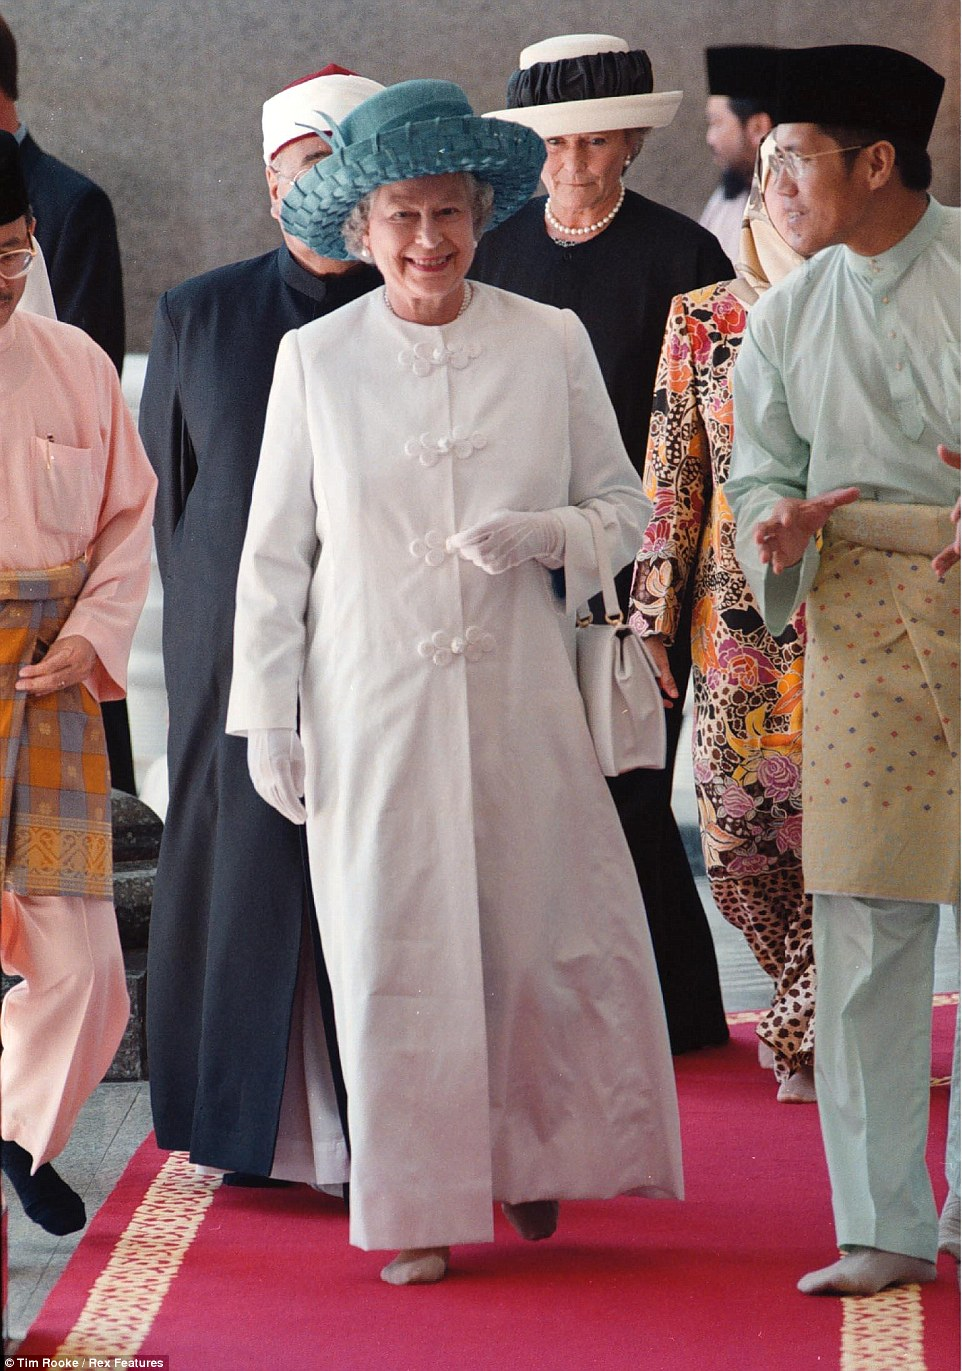 1998: Minus her shoes, the Queen attends a religious shrine dressed in an elegant white coat while on a state visit to Malaysia